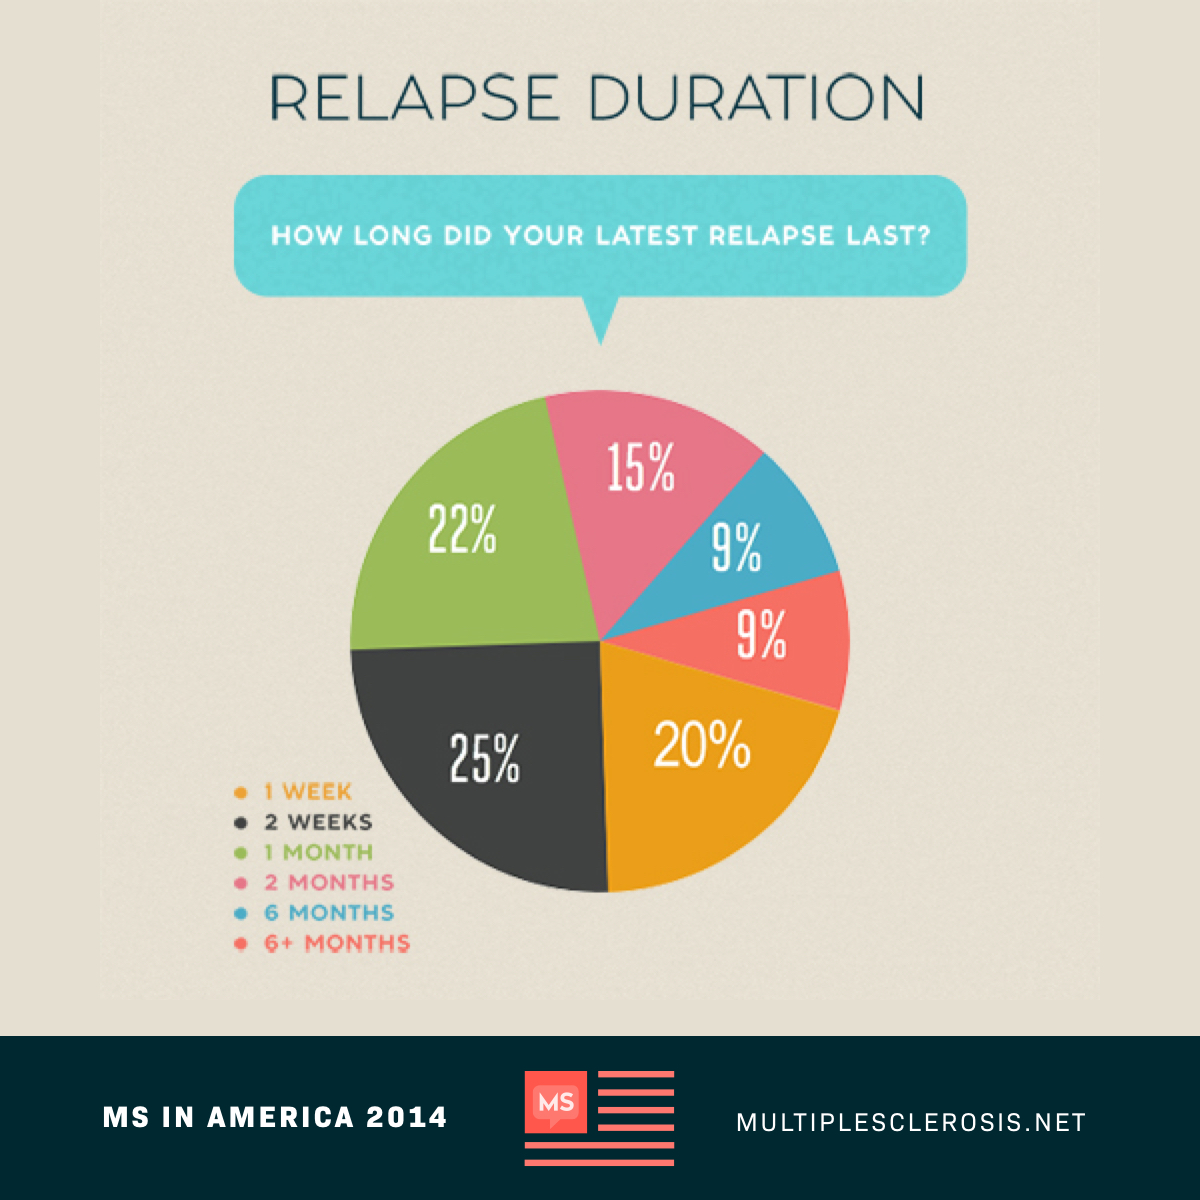 Relapse Duration